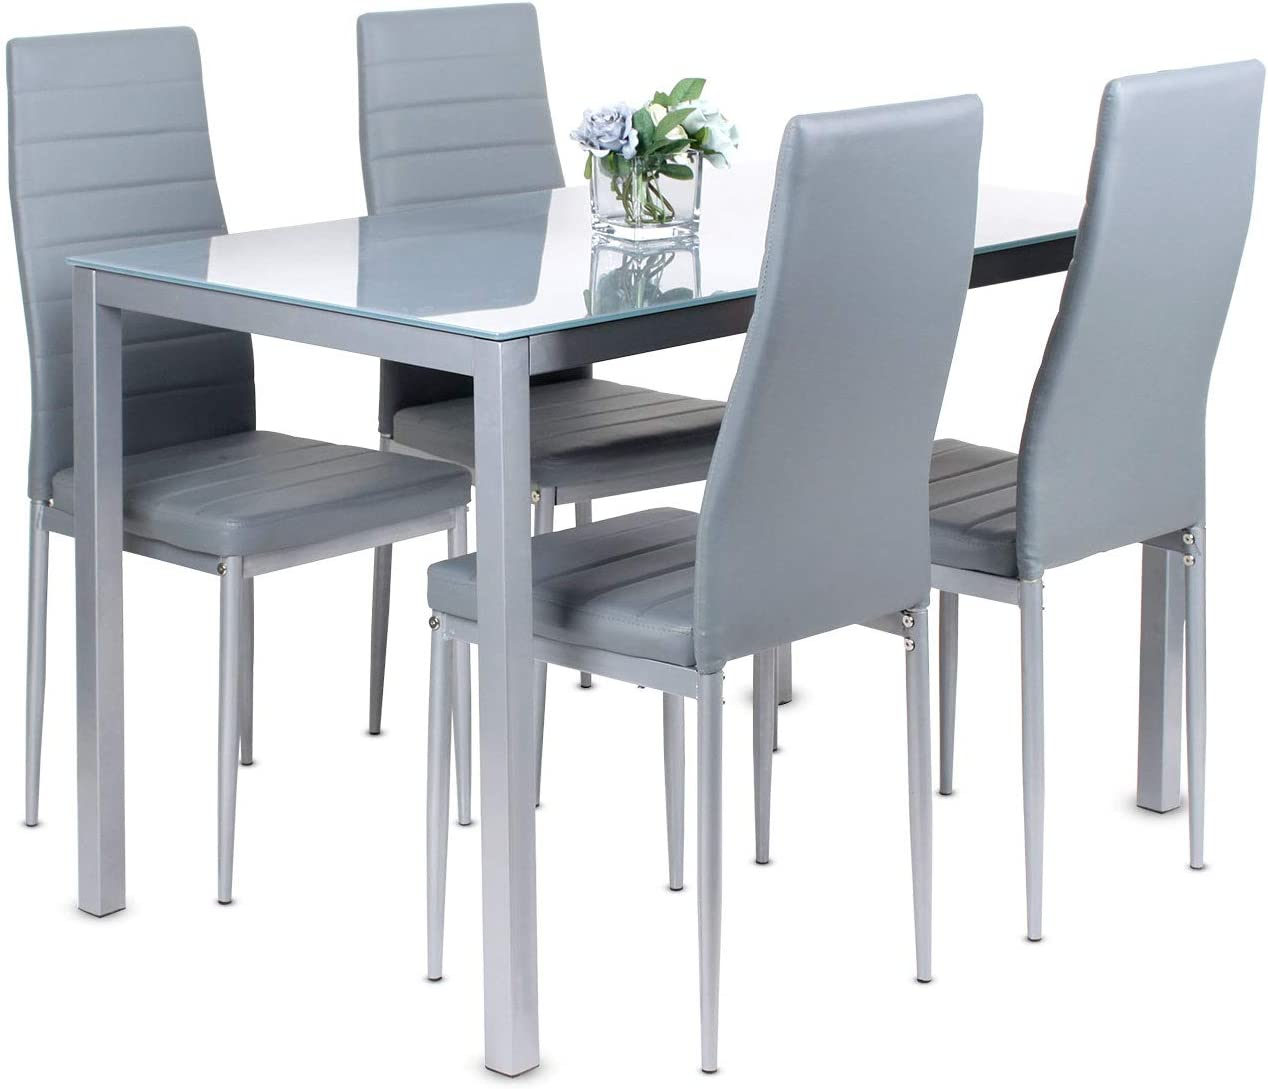 Dining Table And Chairs Set Of 4 Glass Grey Kitchen Table And 4 Faux Leather Padded Chairs Kitchen Dining Table Set Amazon Co Uk Kitchen Home